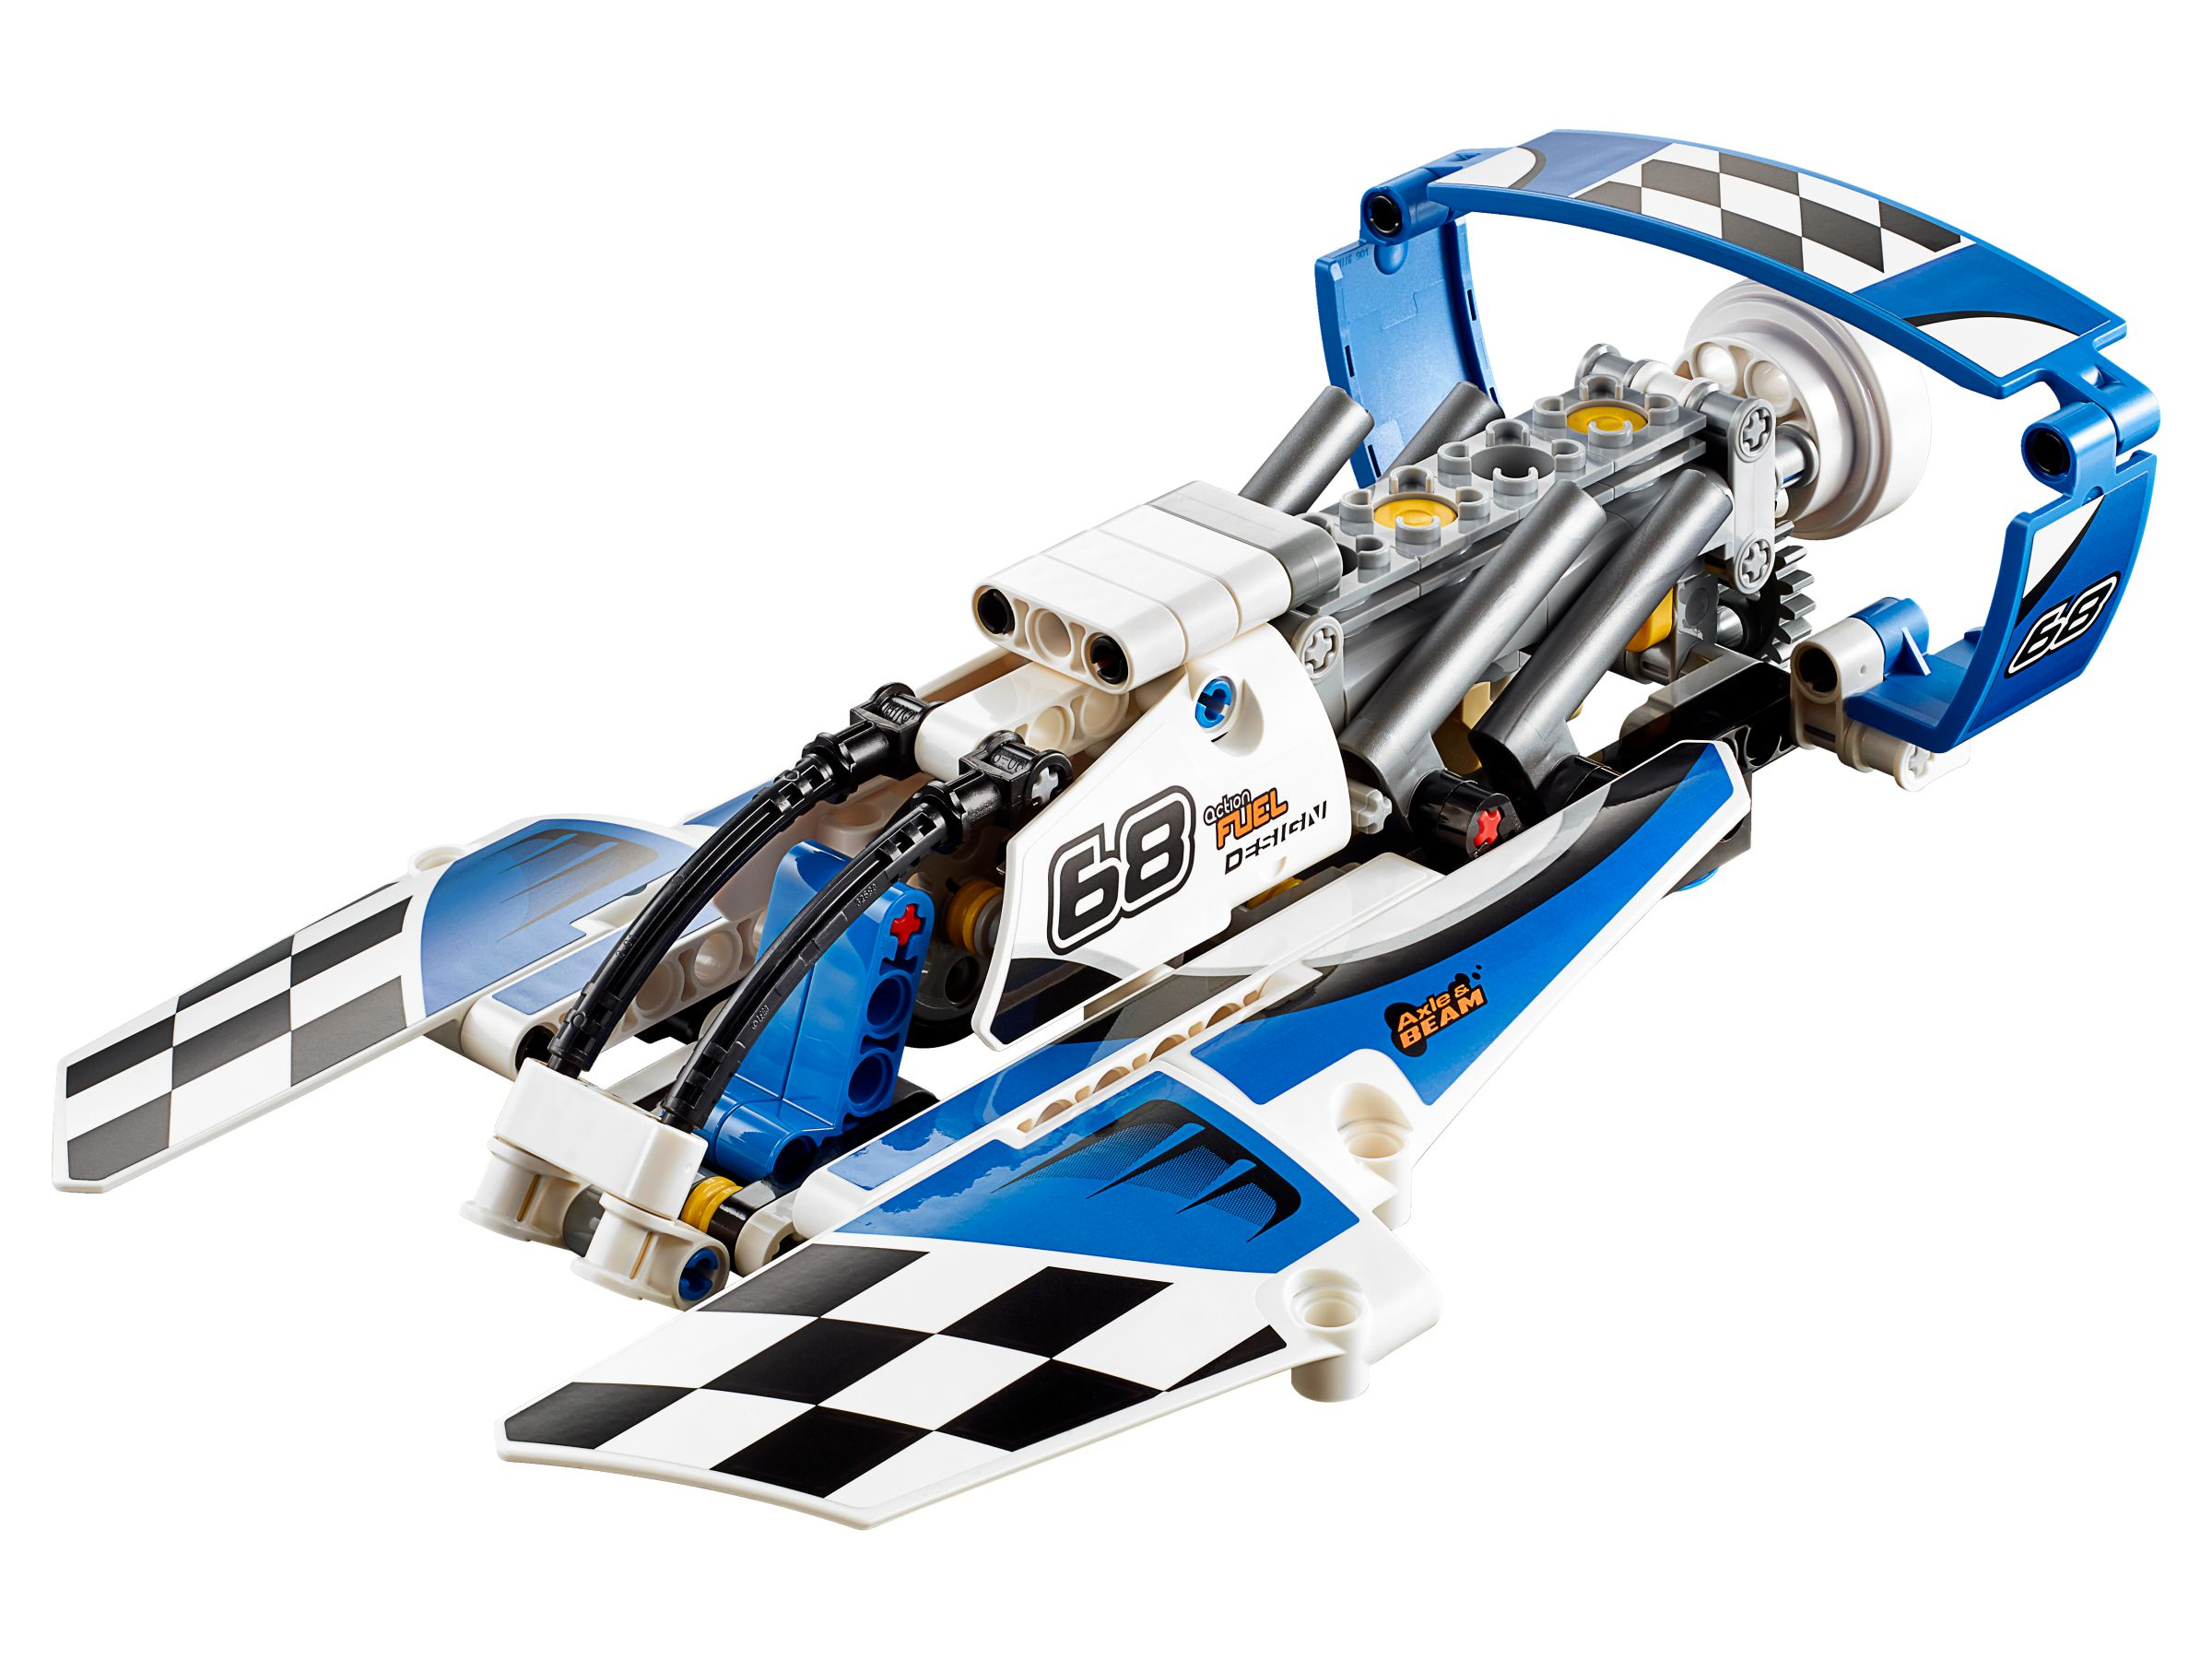 lego 42045 renngleitboot technic 2016 hydroplane racer brickmerge. Black Bedroom Furniture Sets. Home Design Ideas